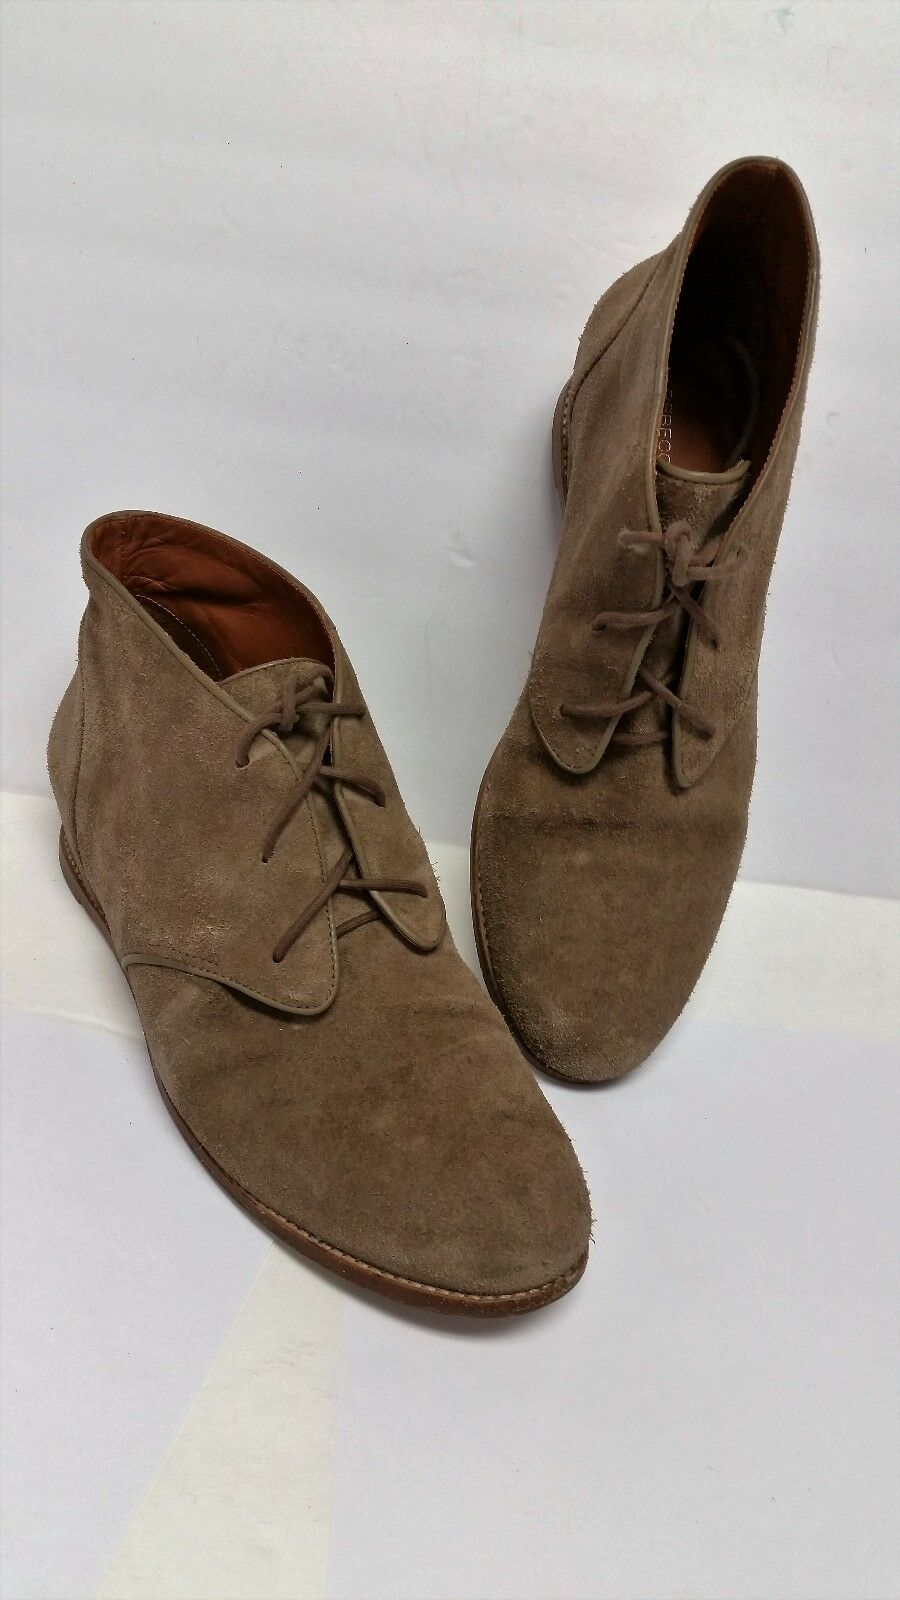 Rebecca Minkoff 'Palmer' Brown Cow Suede Booties Size 9  Brand NICE